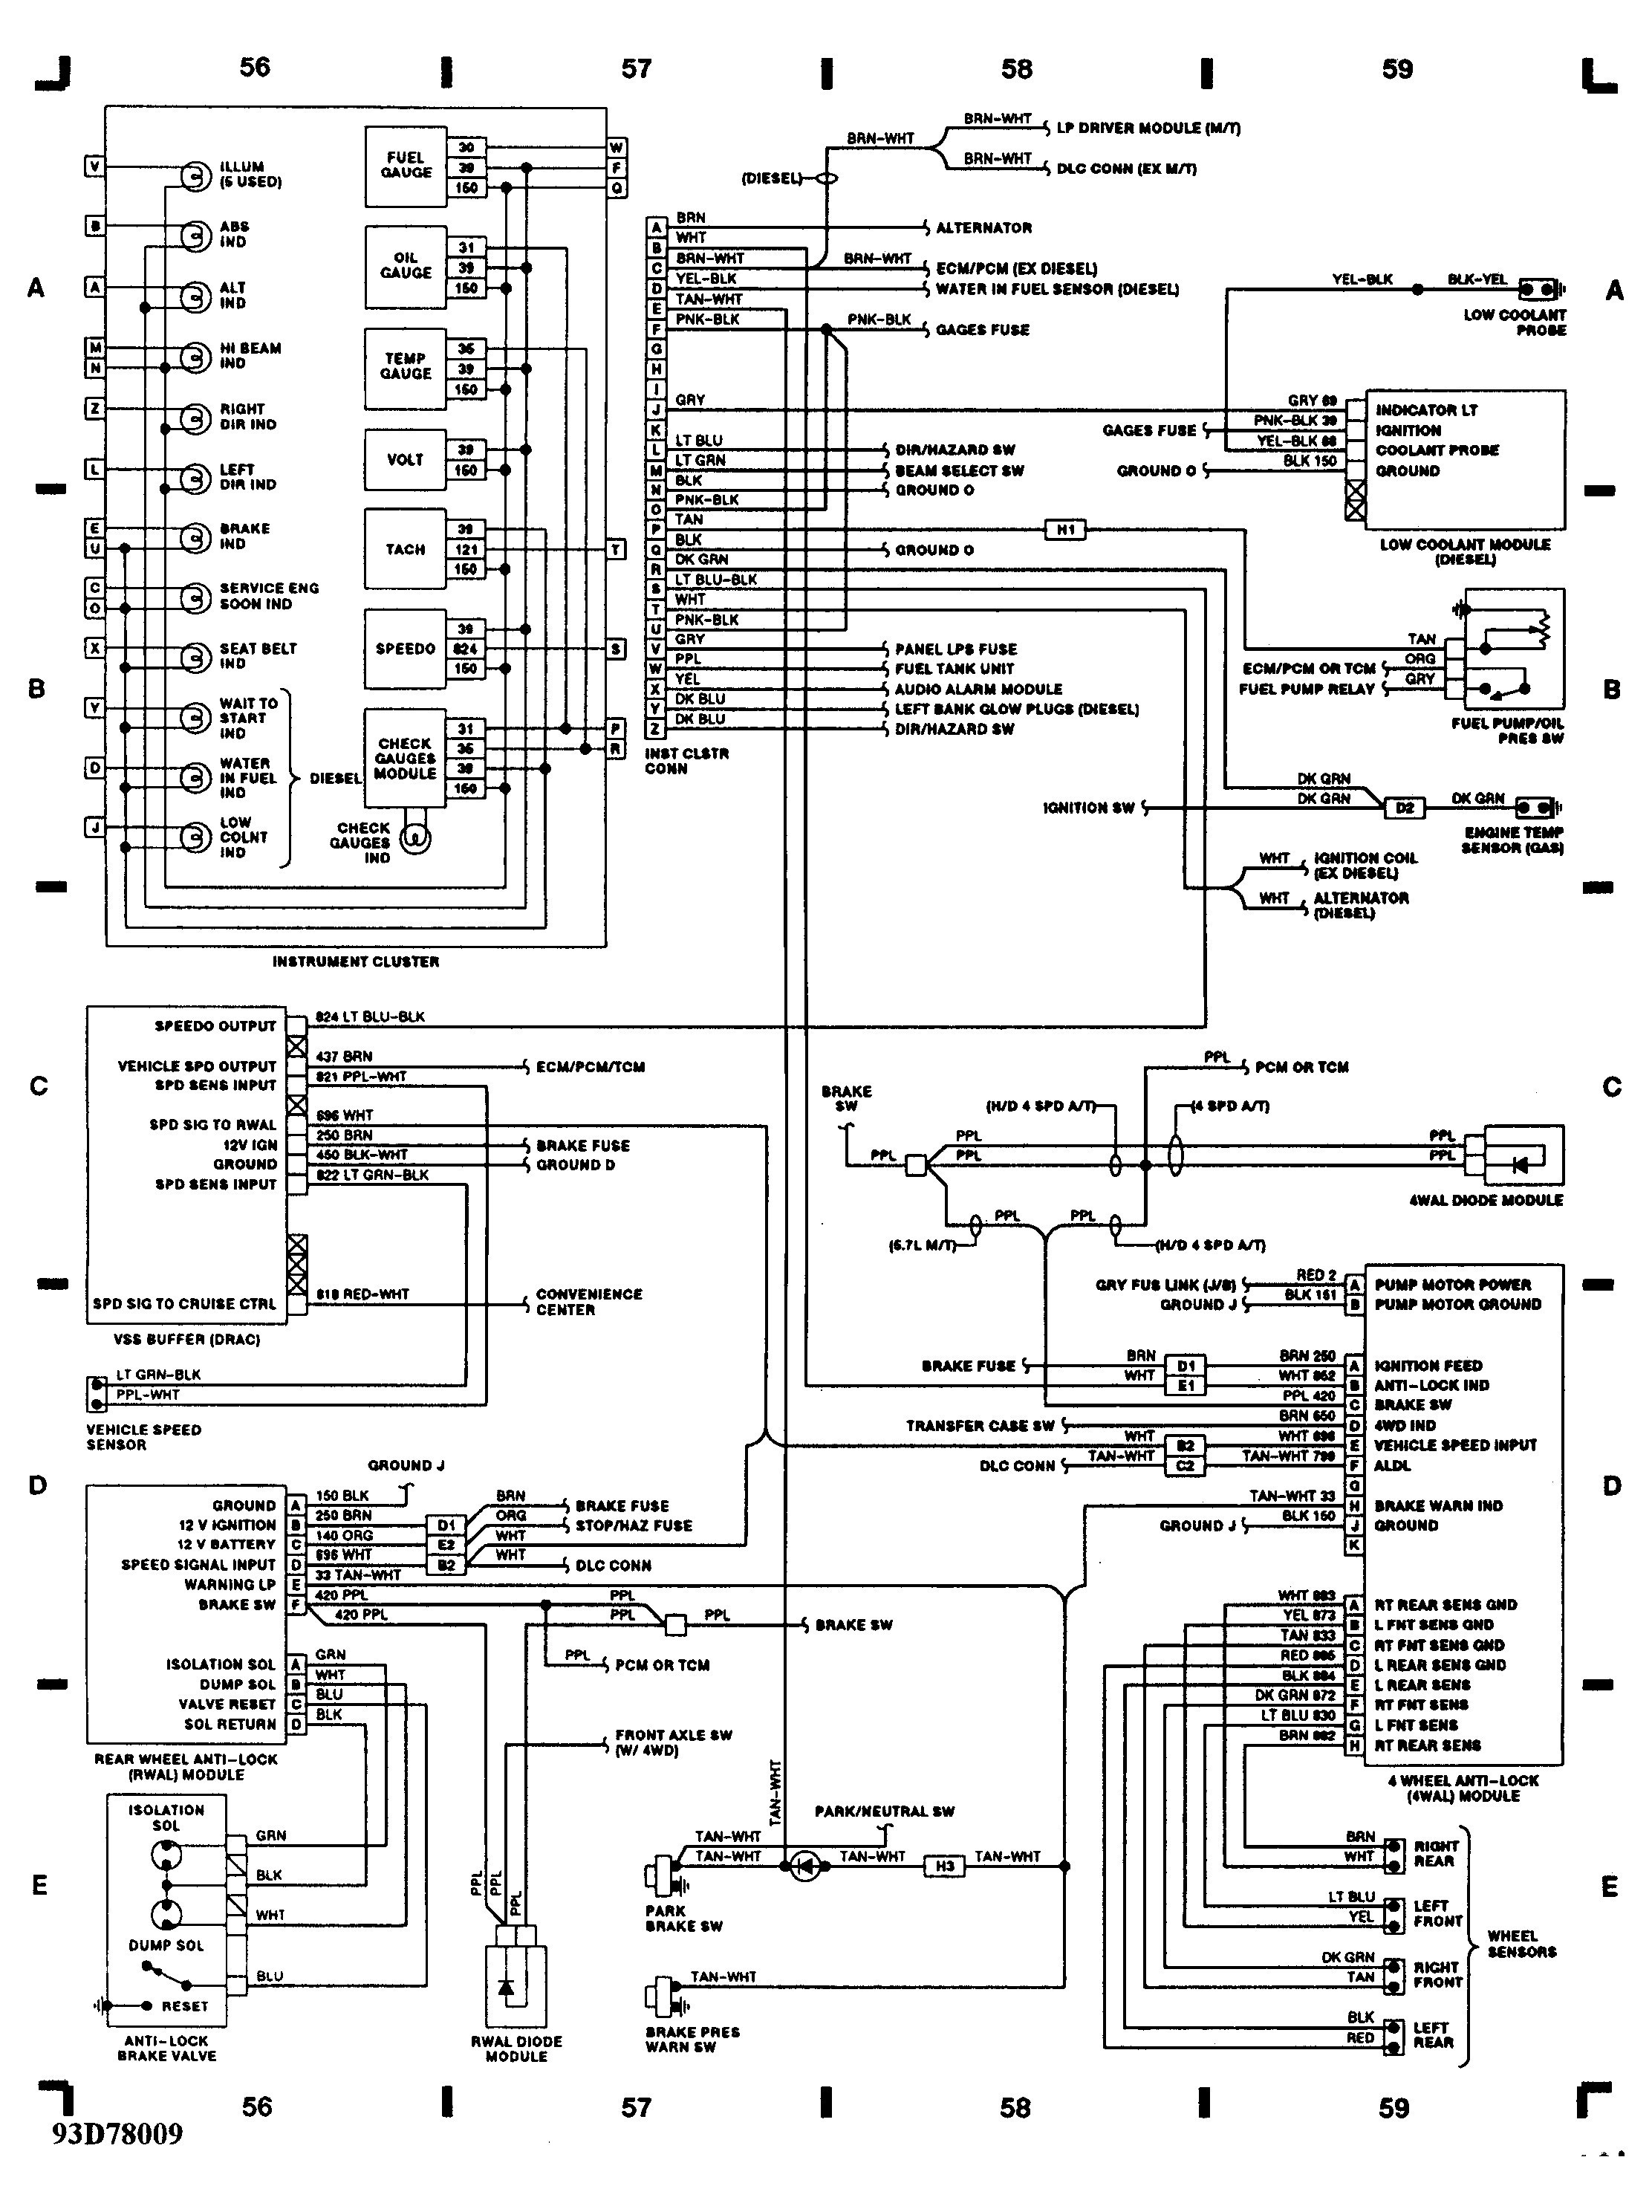 3 8l chevy engine diagram house wiring diagram symbols u2022 rh maxturner co 2004 Chevy Impala Engine Diagram 2004 Chevy Impala Engine Diagram